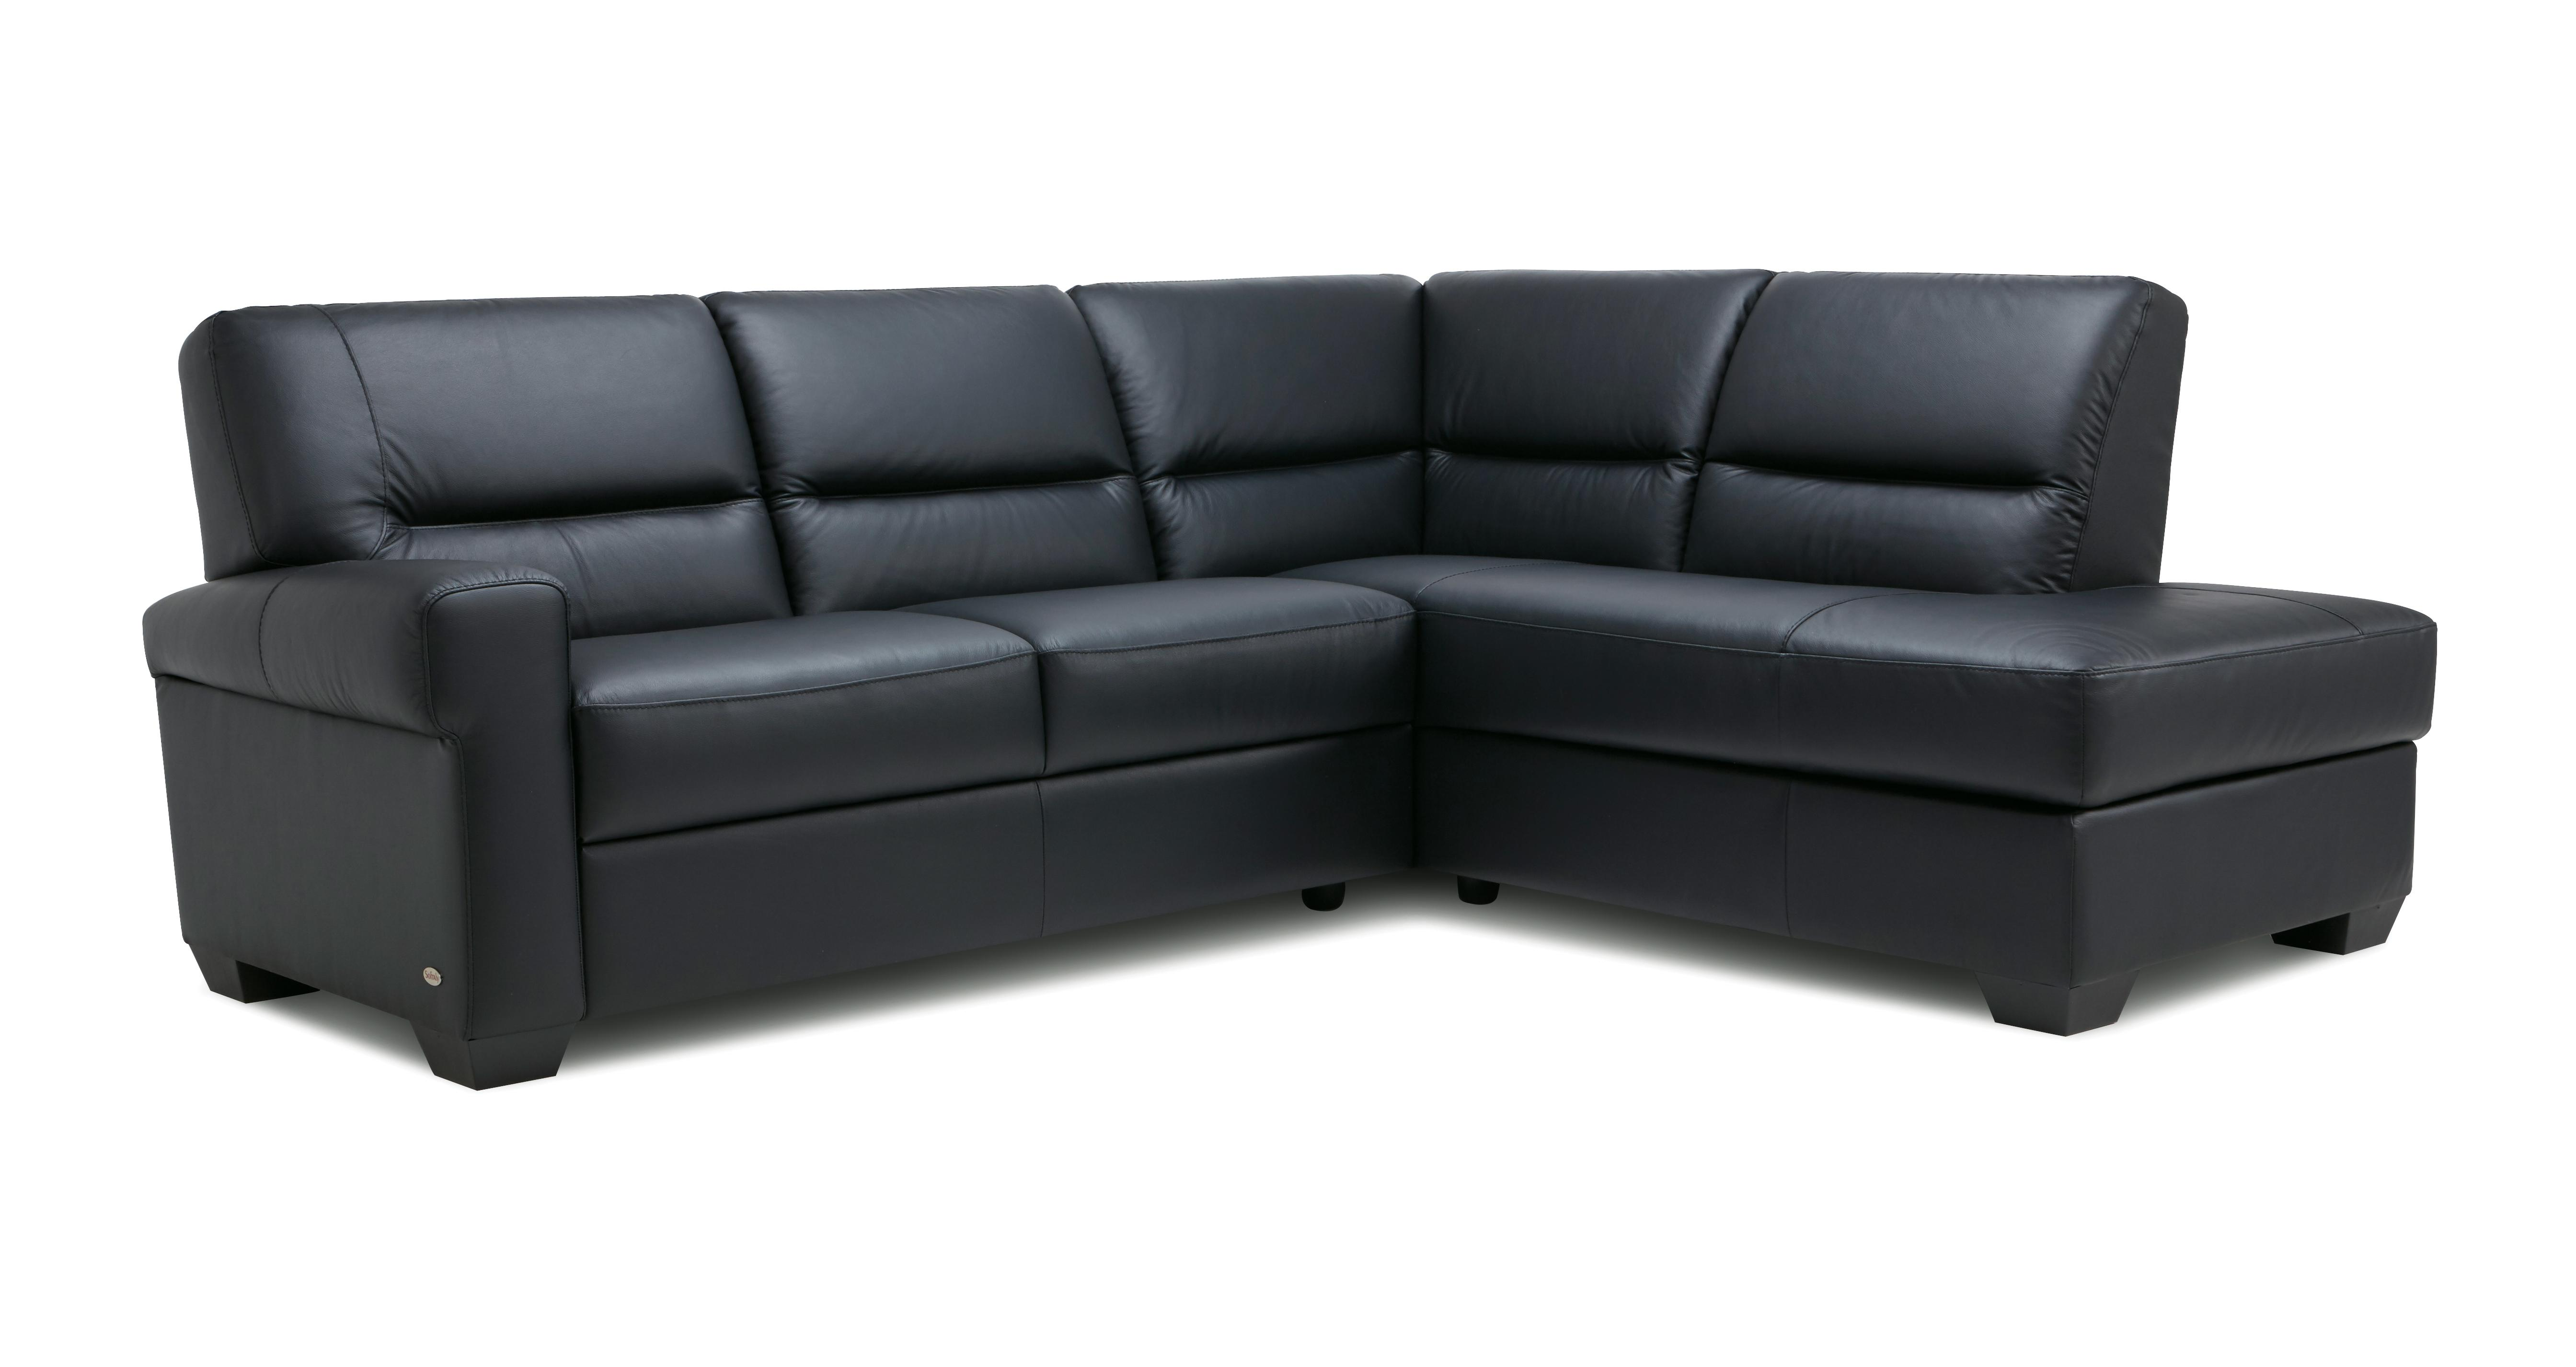 milano leather dual facing corner sofa group black angela grey fabric modern and loveseat set pay monthly brokeasshome